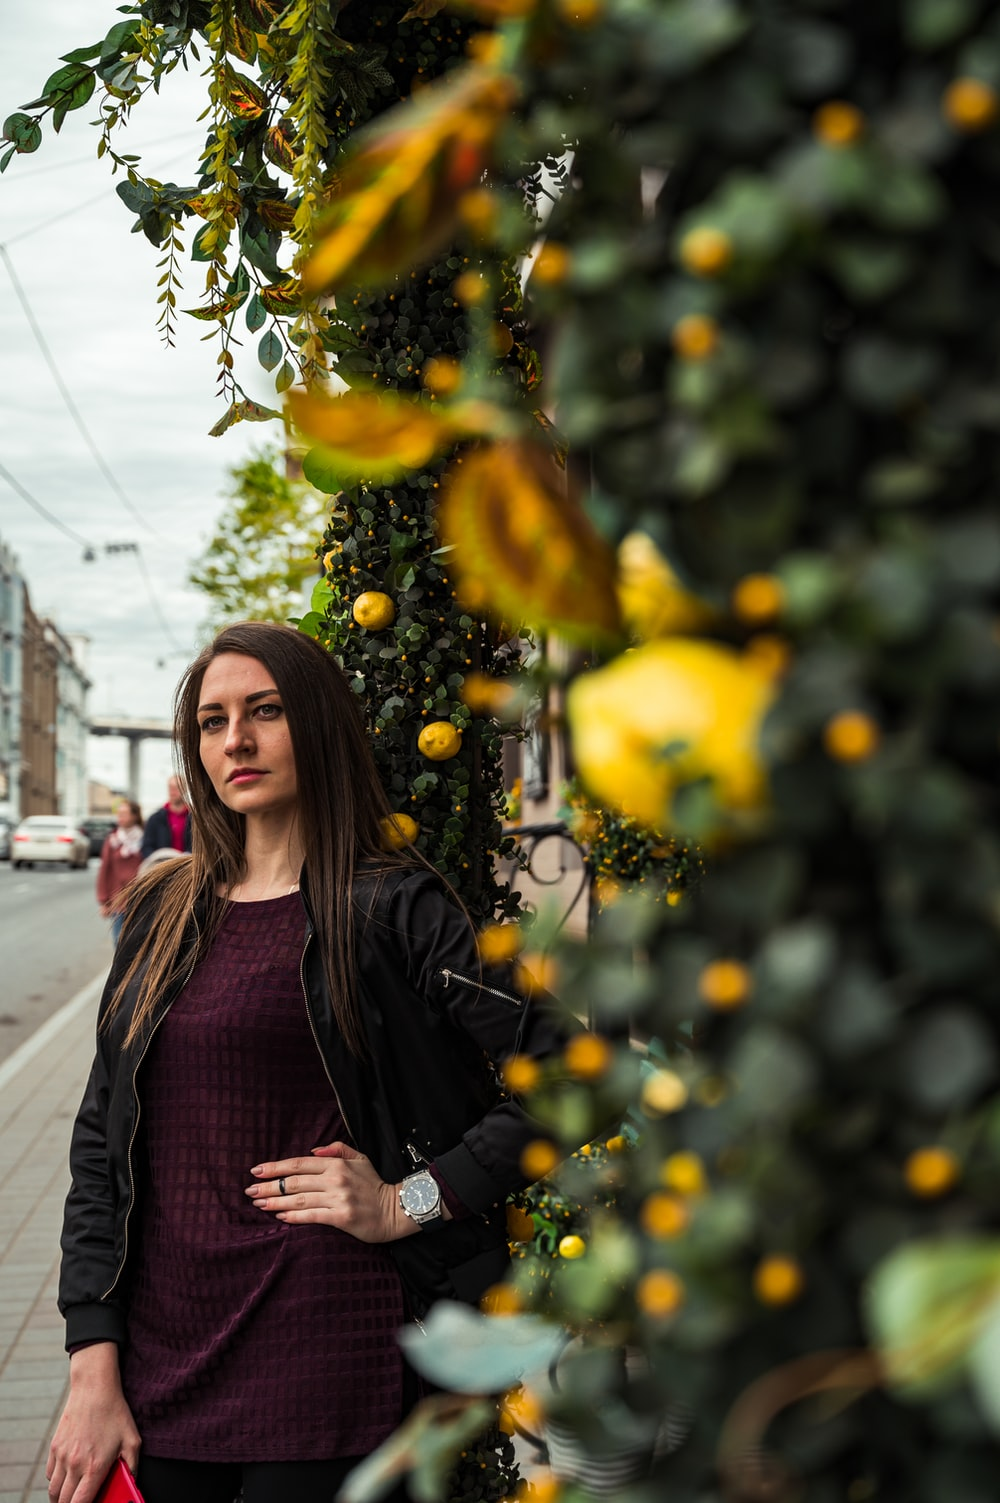 woman in black leather jacket standing beside yellow leaves during daytime